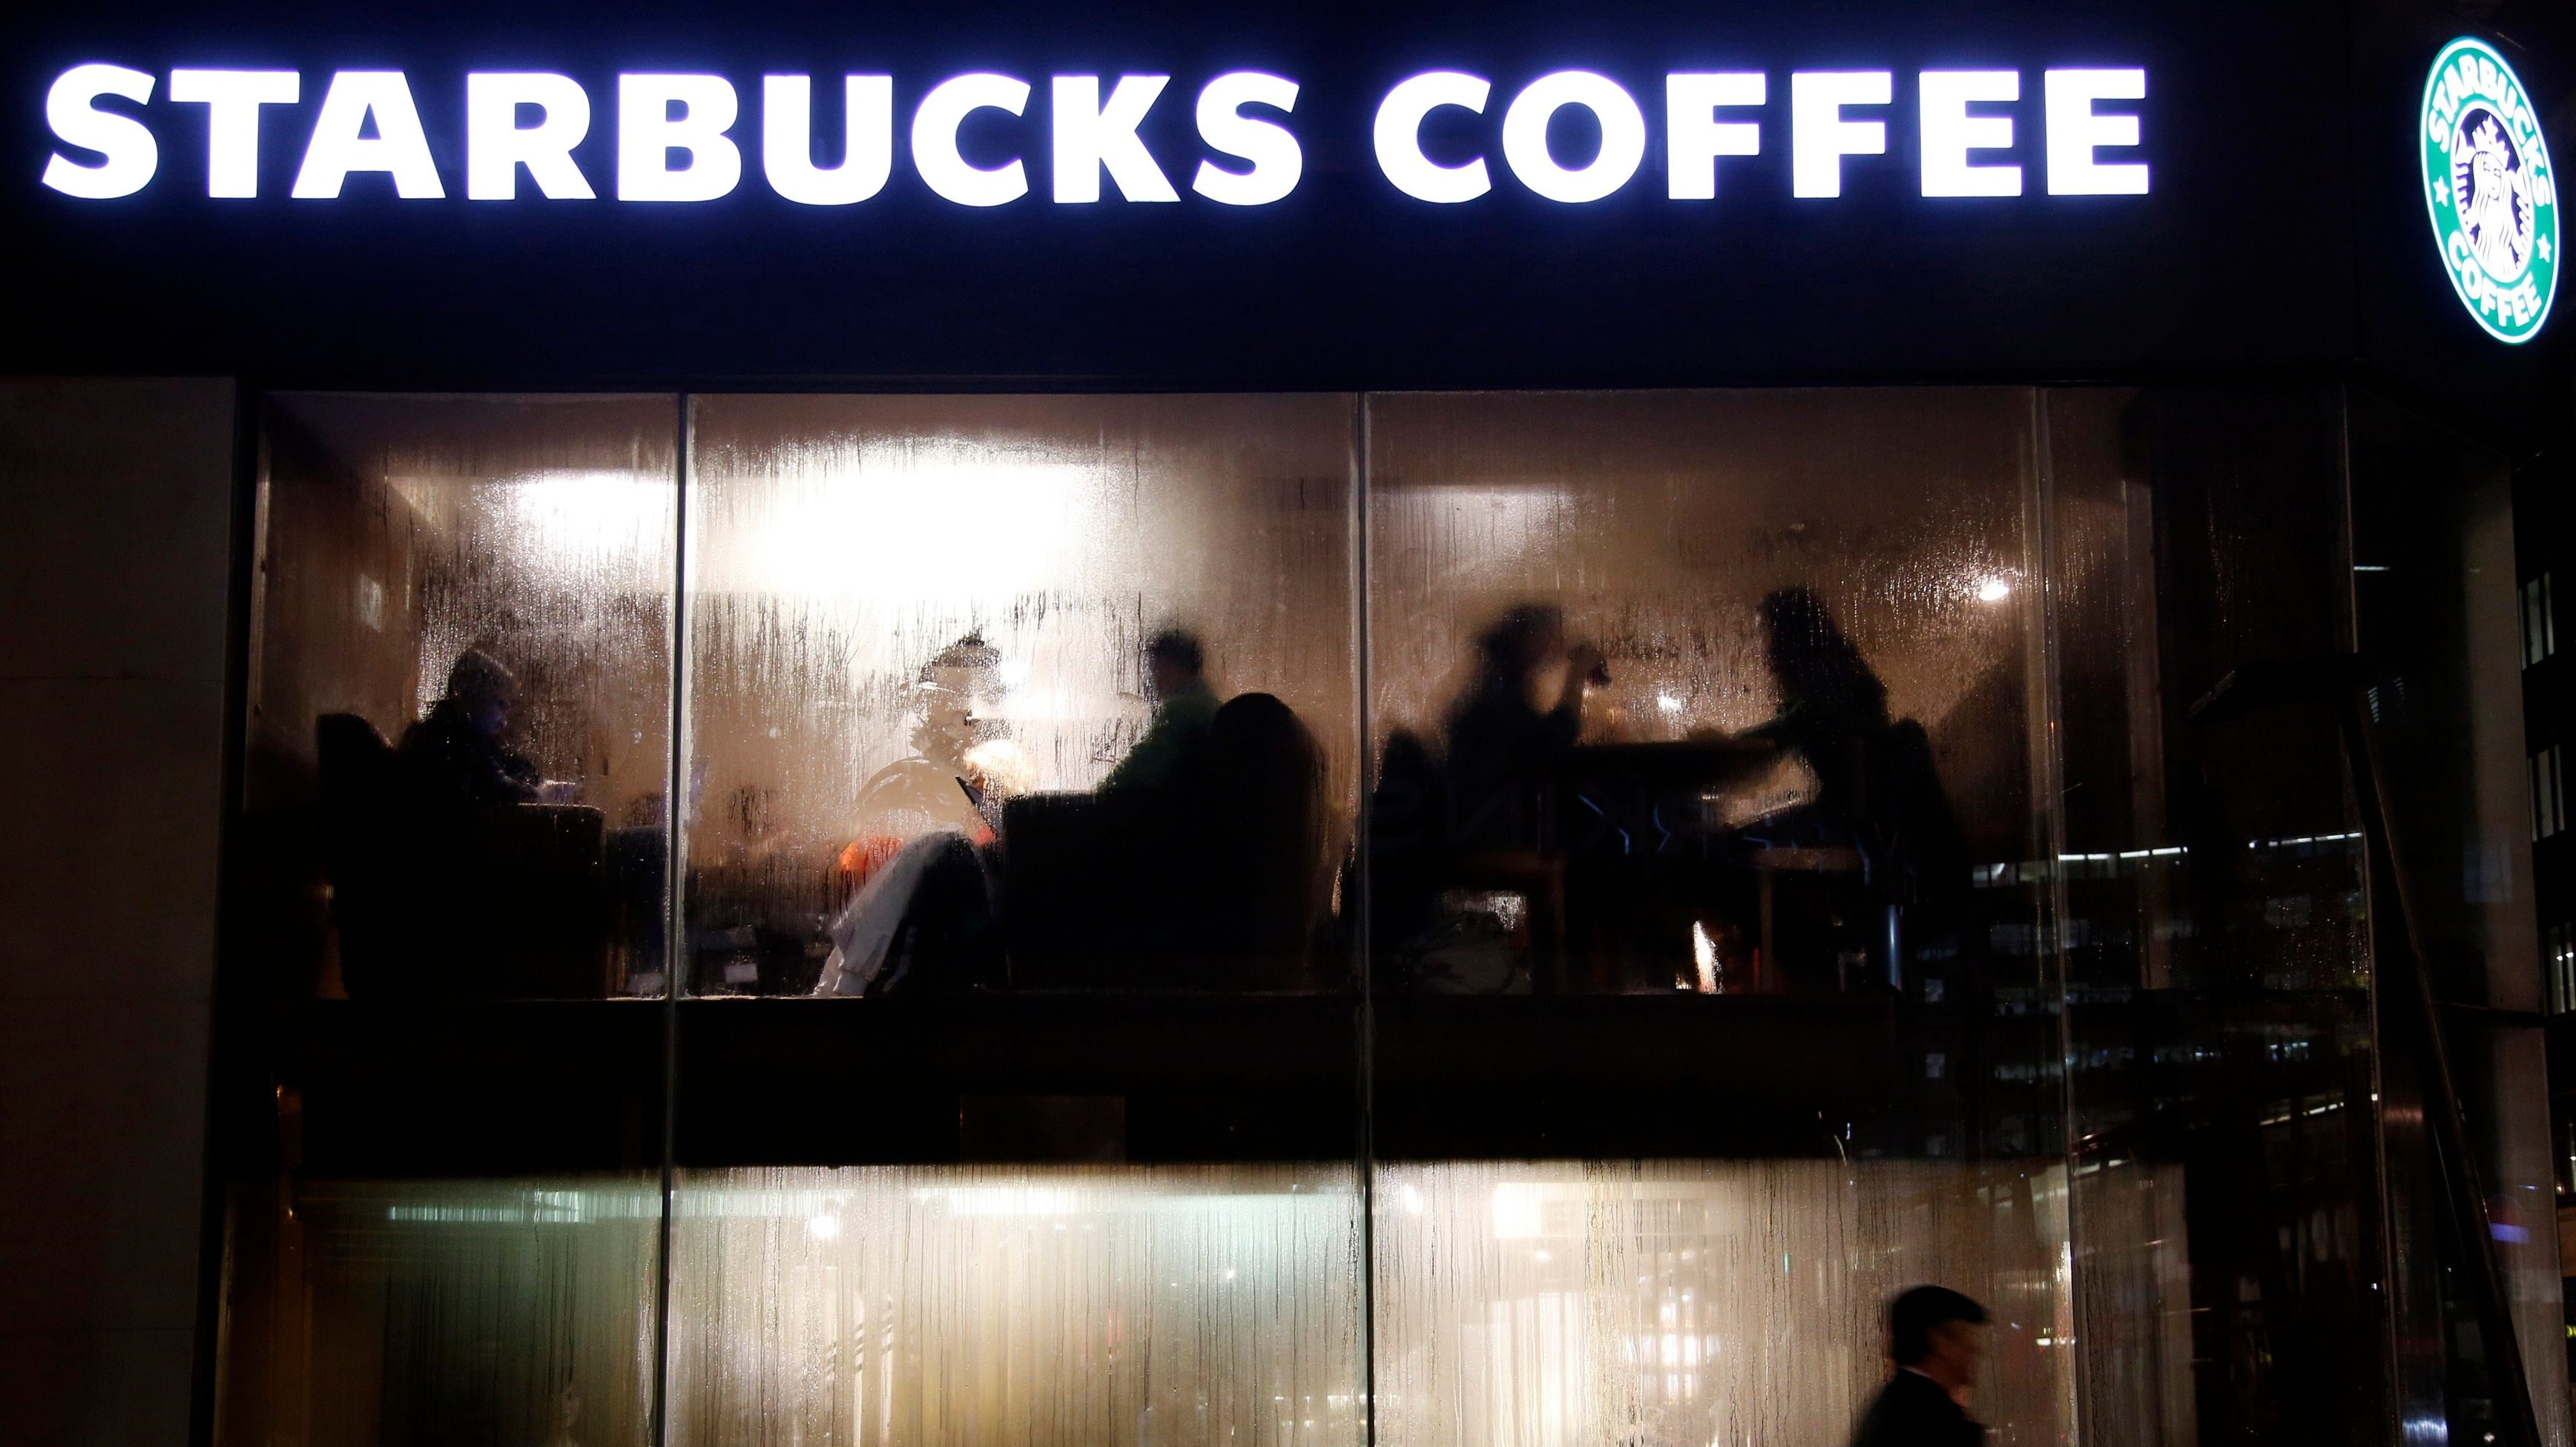 Customers are seen behind the steamy windows of a Starbucks coffee house in central London.